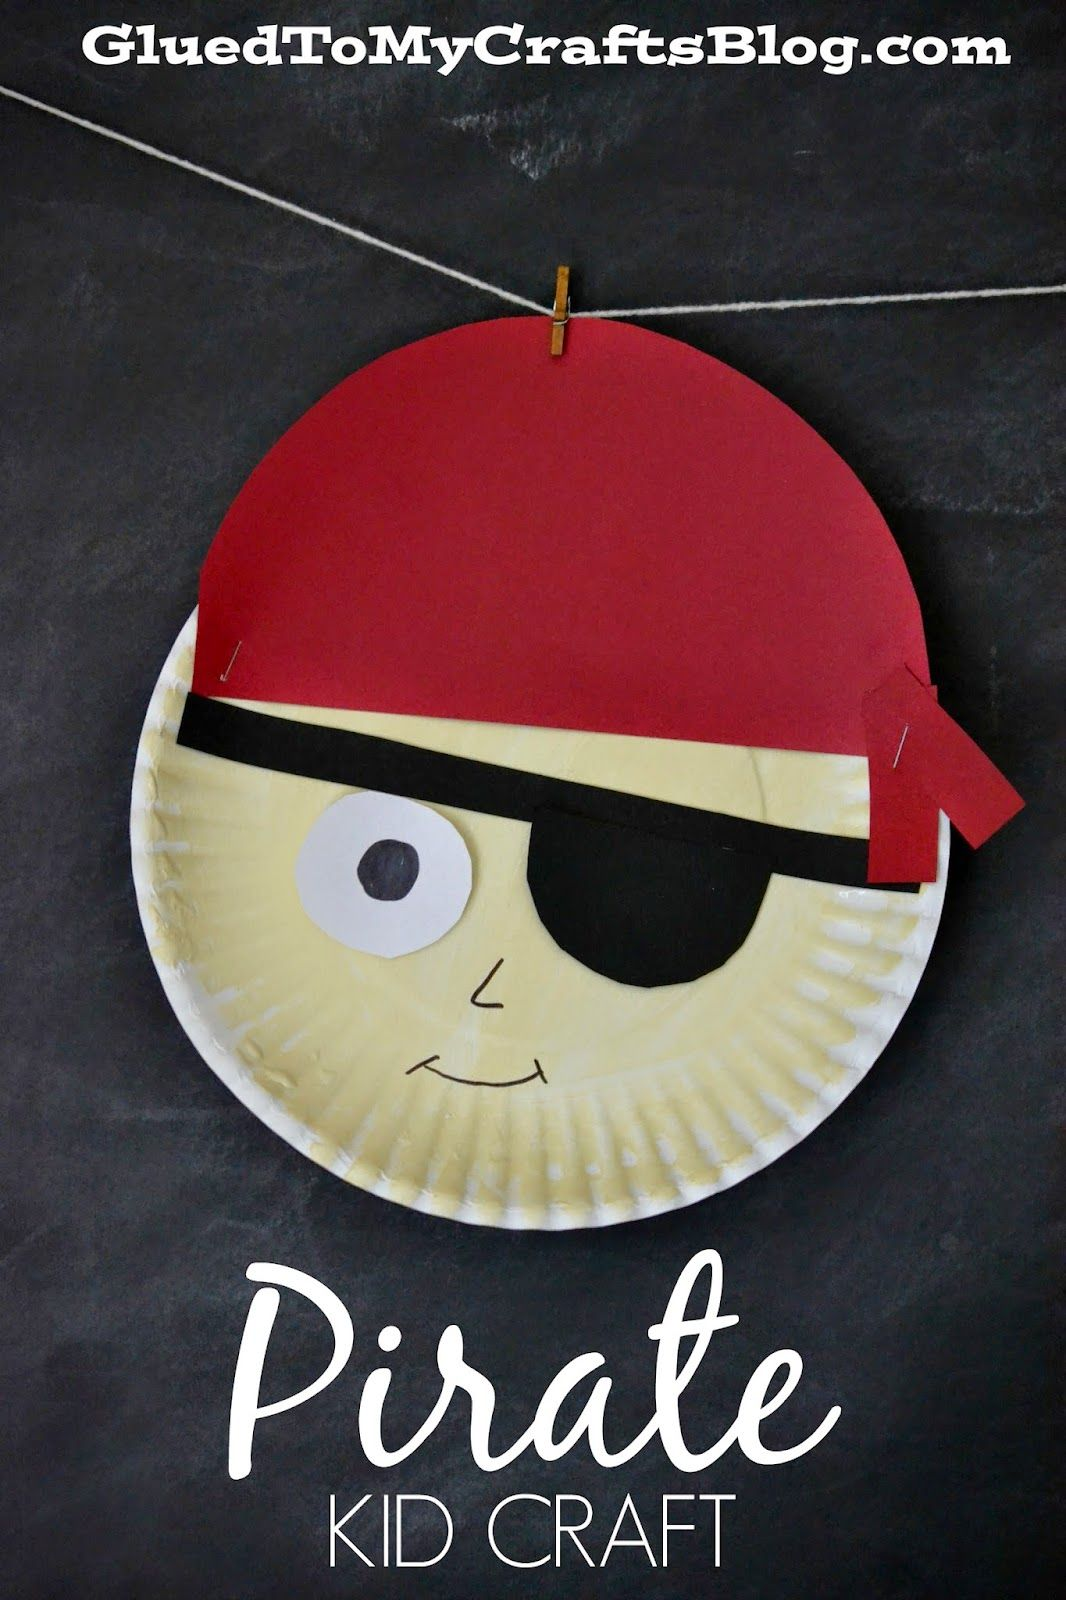 Pirate crafts for toddlers - Pirate Kid Craft Paper Plate